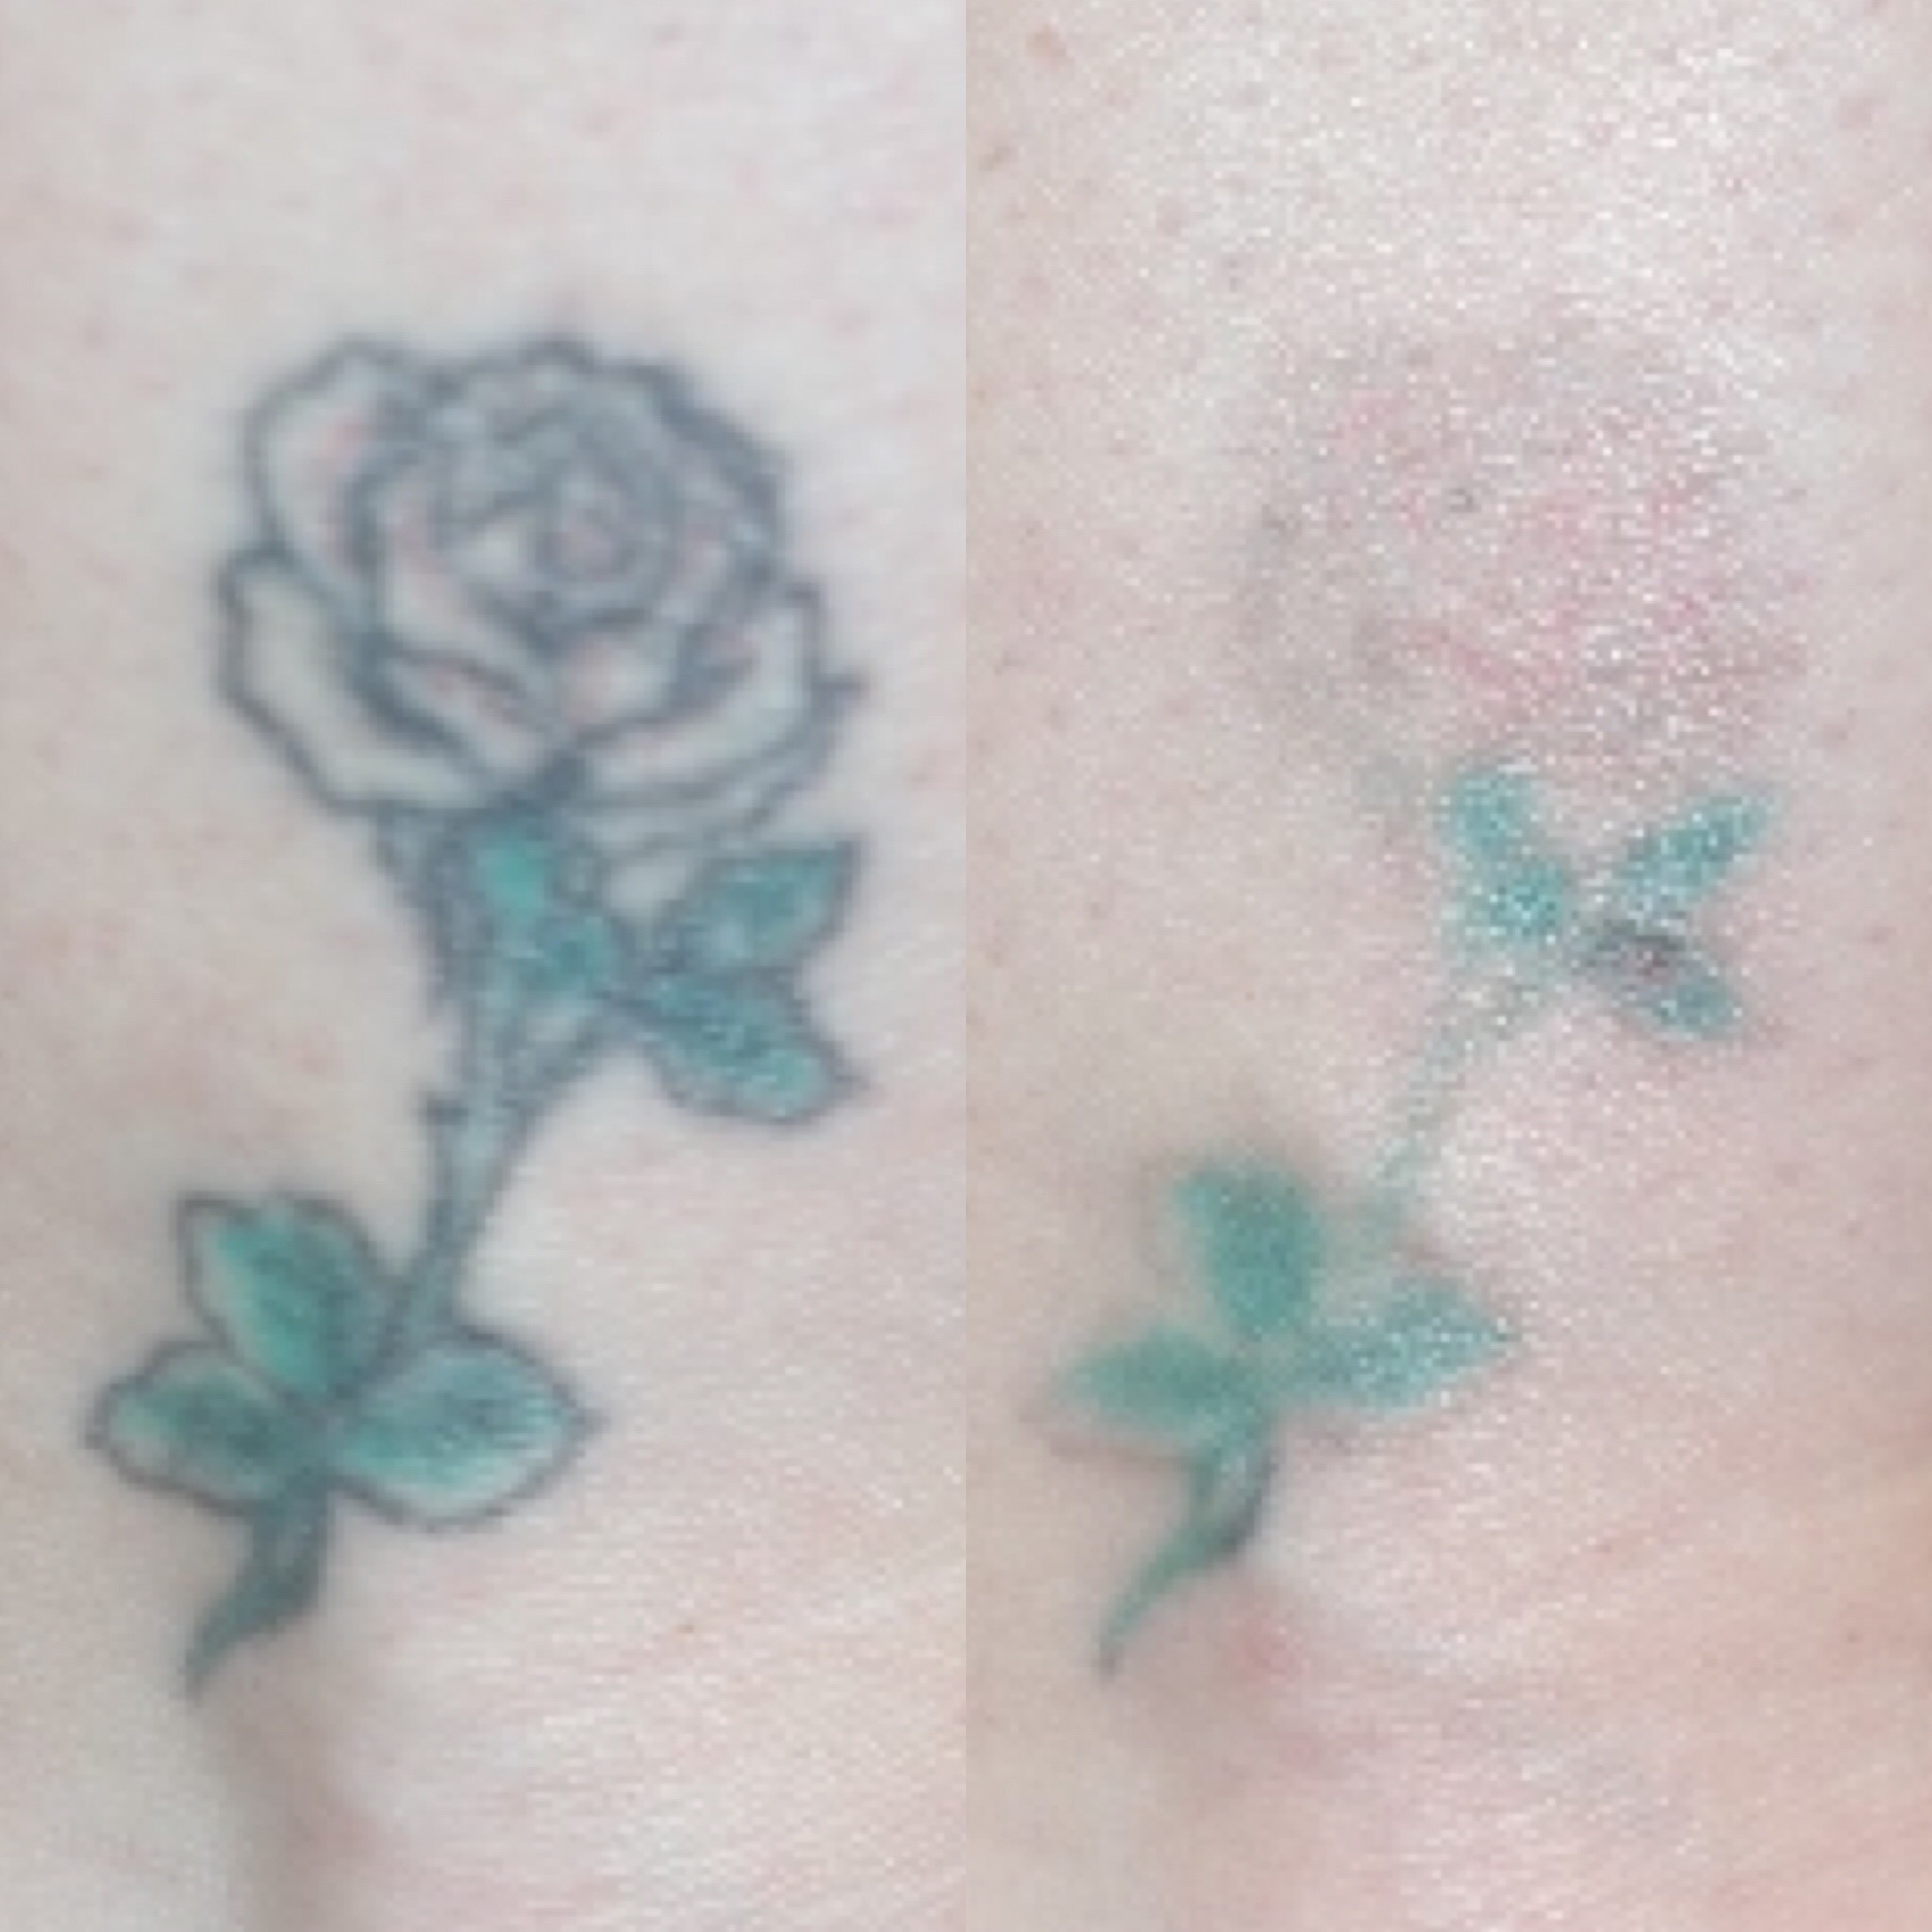 Florida Doctor Introduces Next Generation Laser Tattoo Ideas And Designs